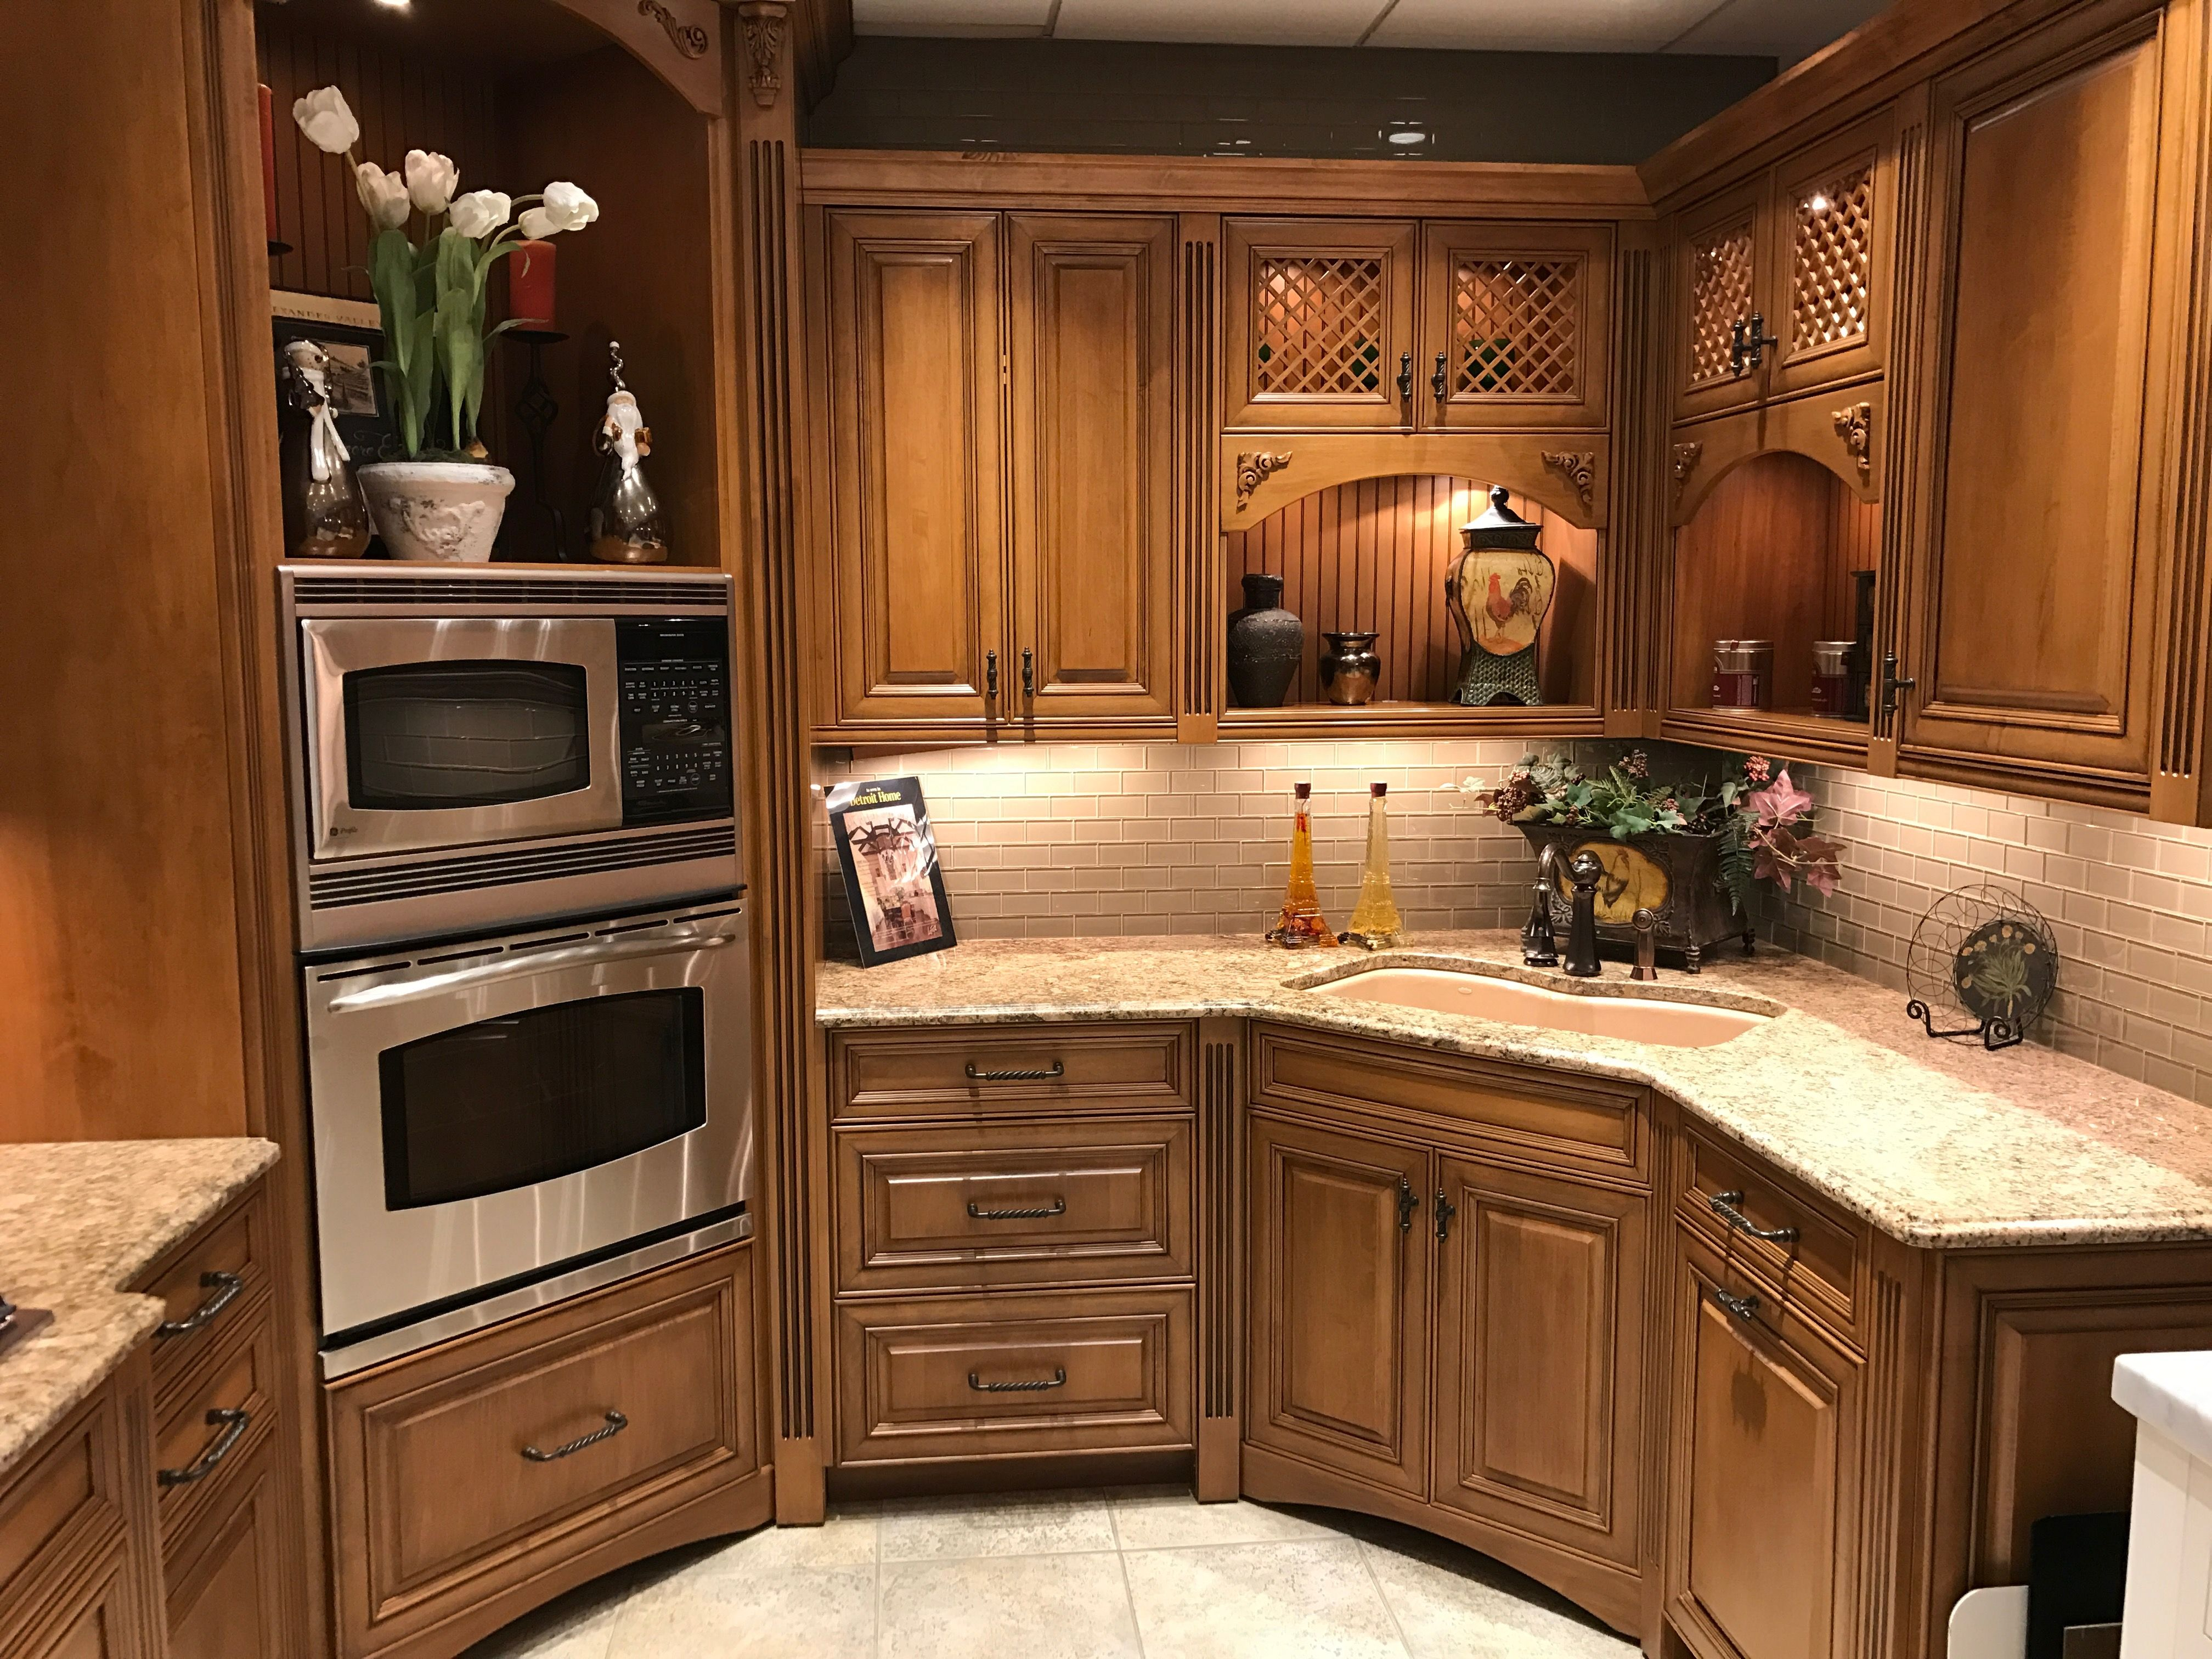 One Of Our Many Kitchens On Display At Lafata Cabinets The Cabinets Are Windham In Maple With A Warm Hazelnut Finish Check Out Kitchen Interior Kitchen Kitchen Remodel